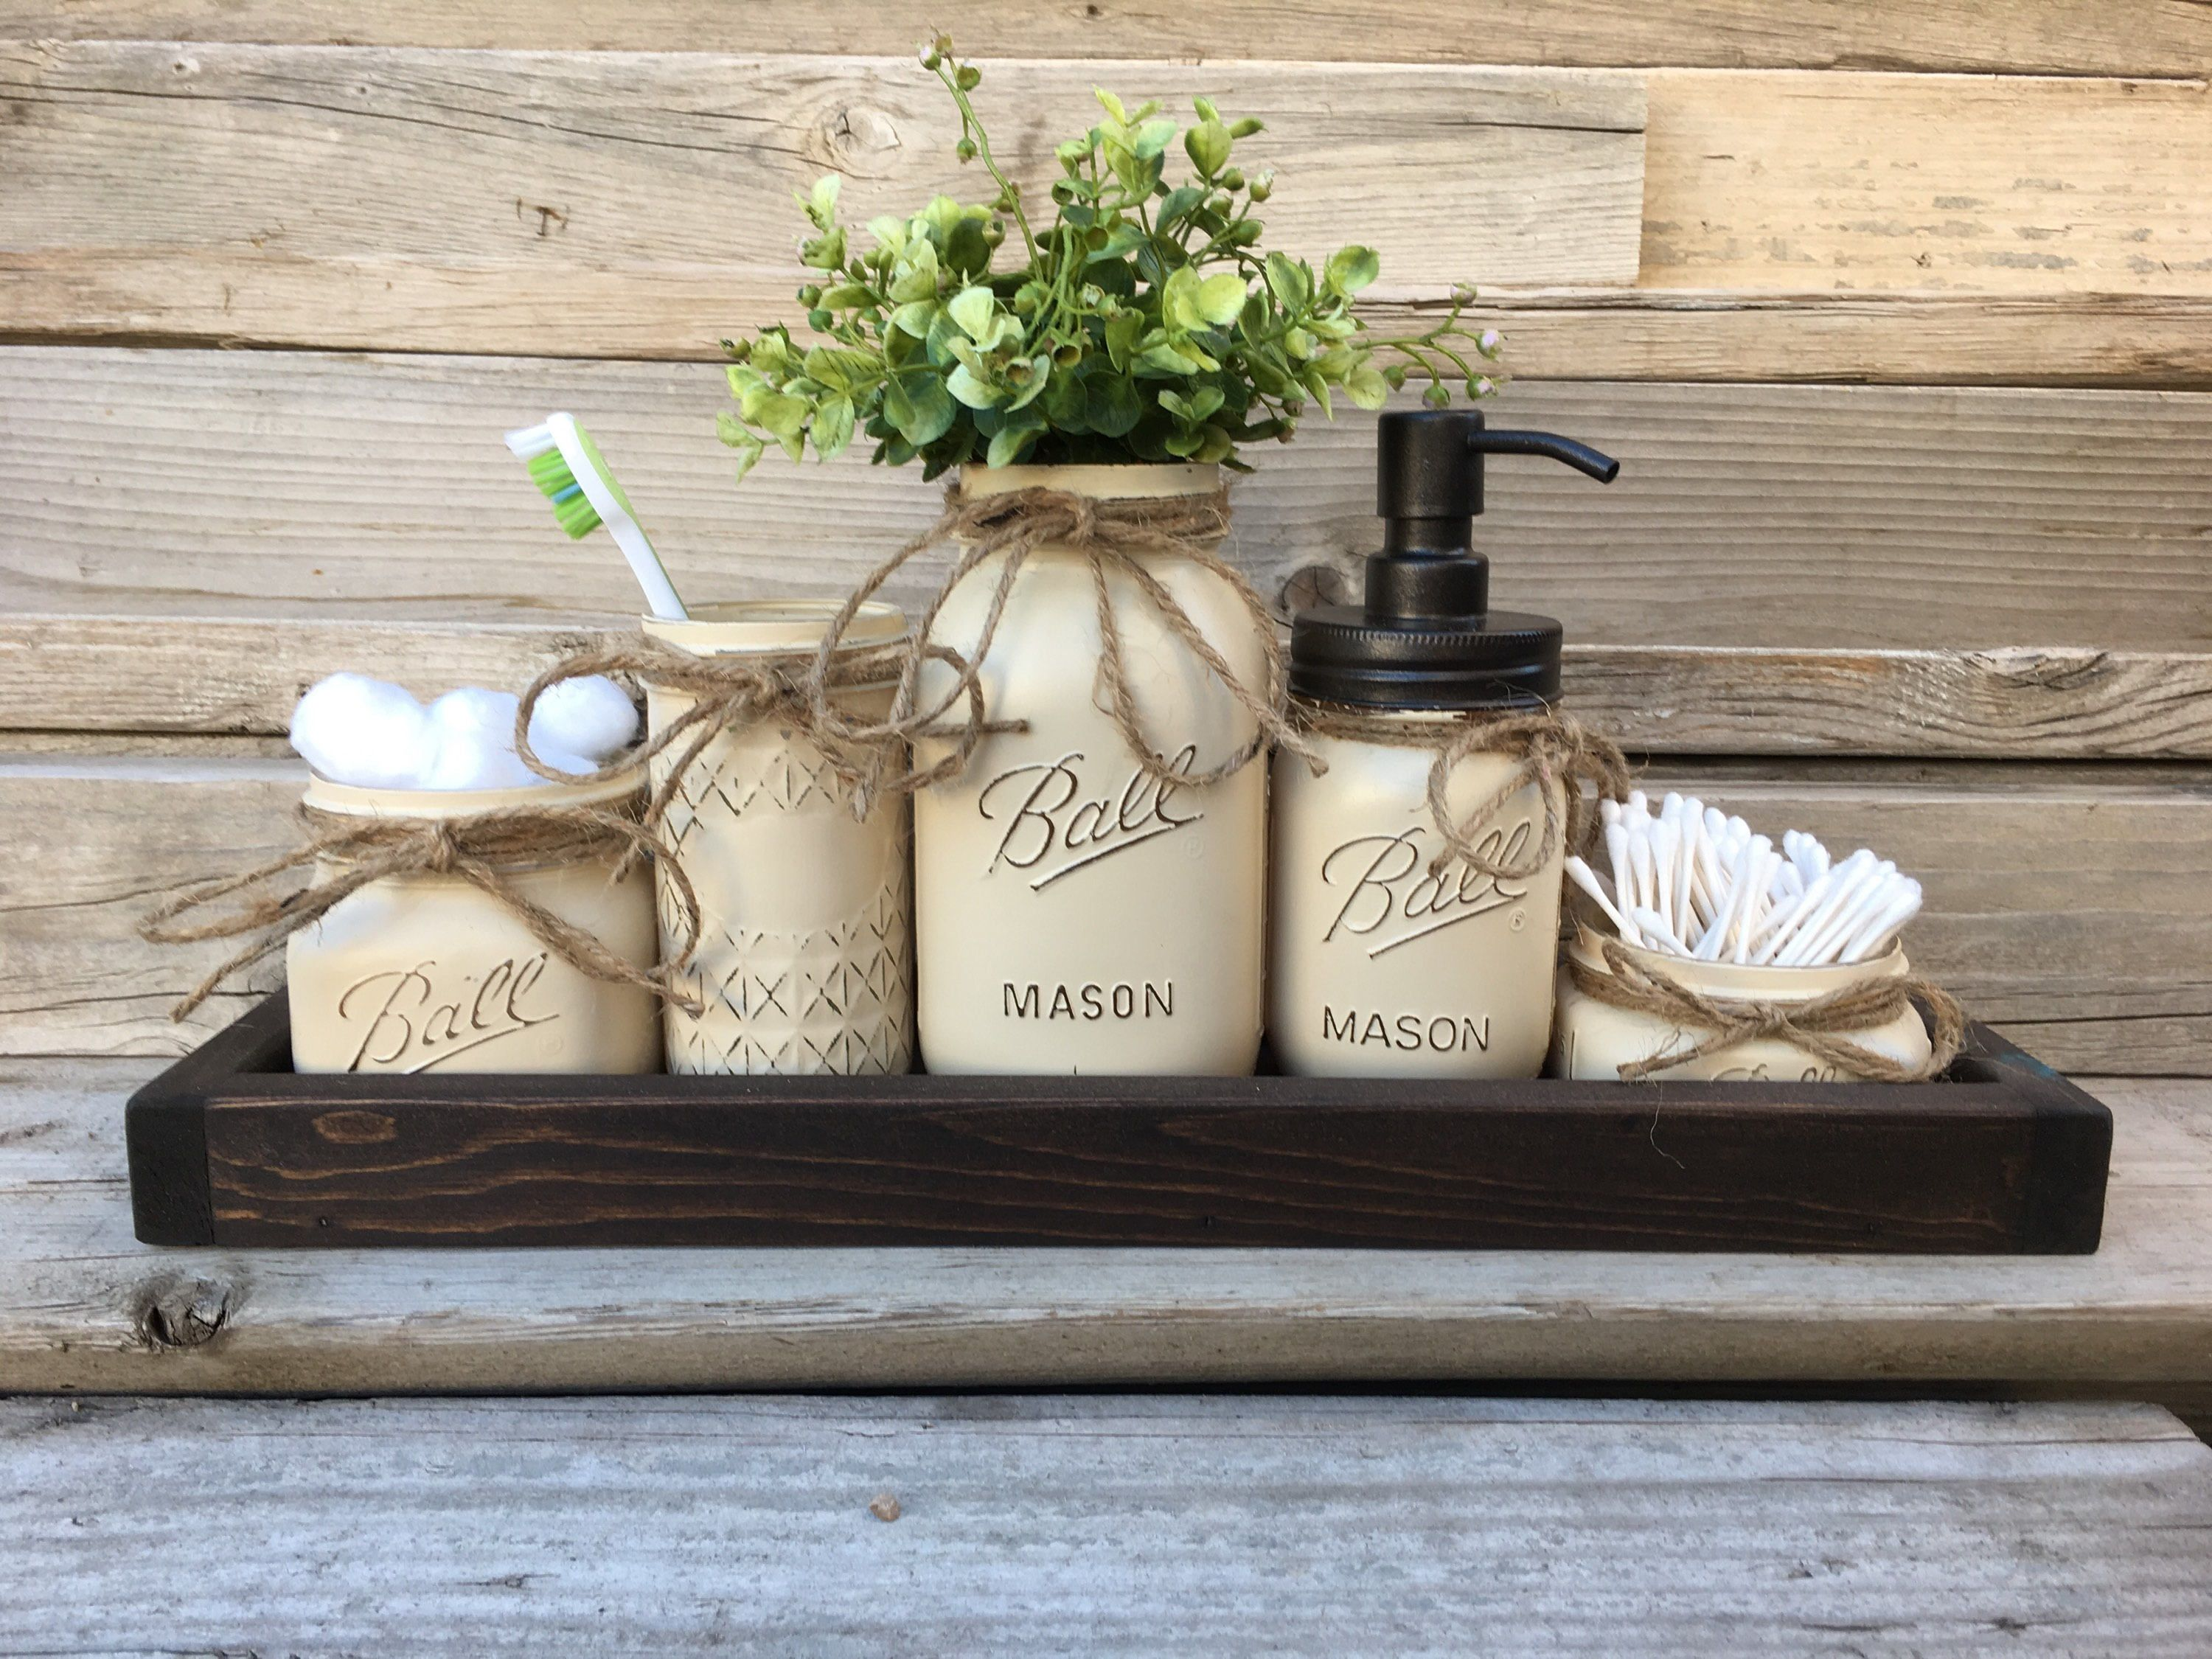 Rustic Bathroom Decor Mason Jar Bathroom Set Bronze Oil Etsy Mason Jar Bathroom Farmhouse Bathroom Accessories Rustic Bathroom Decor